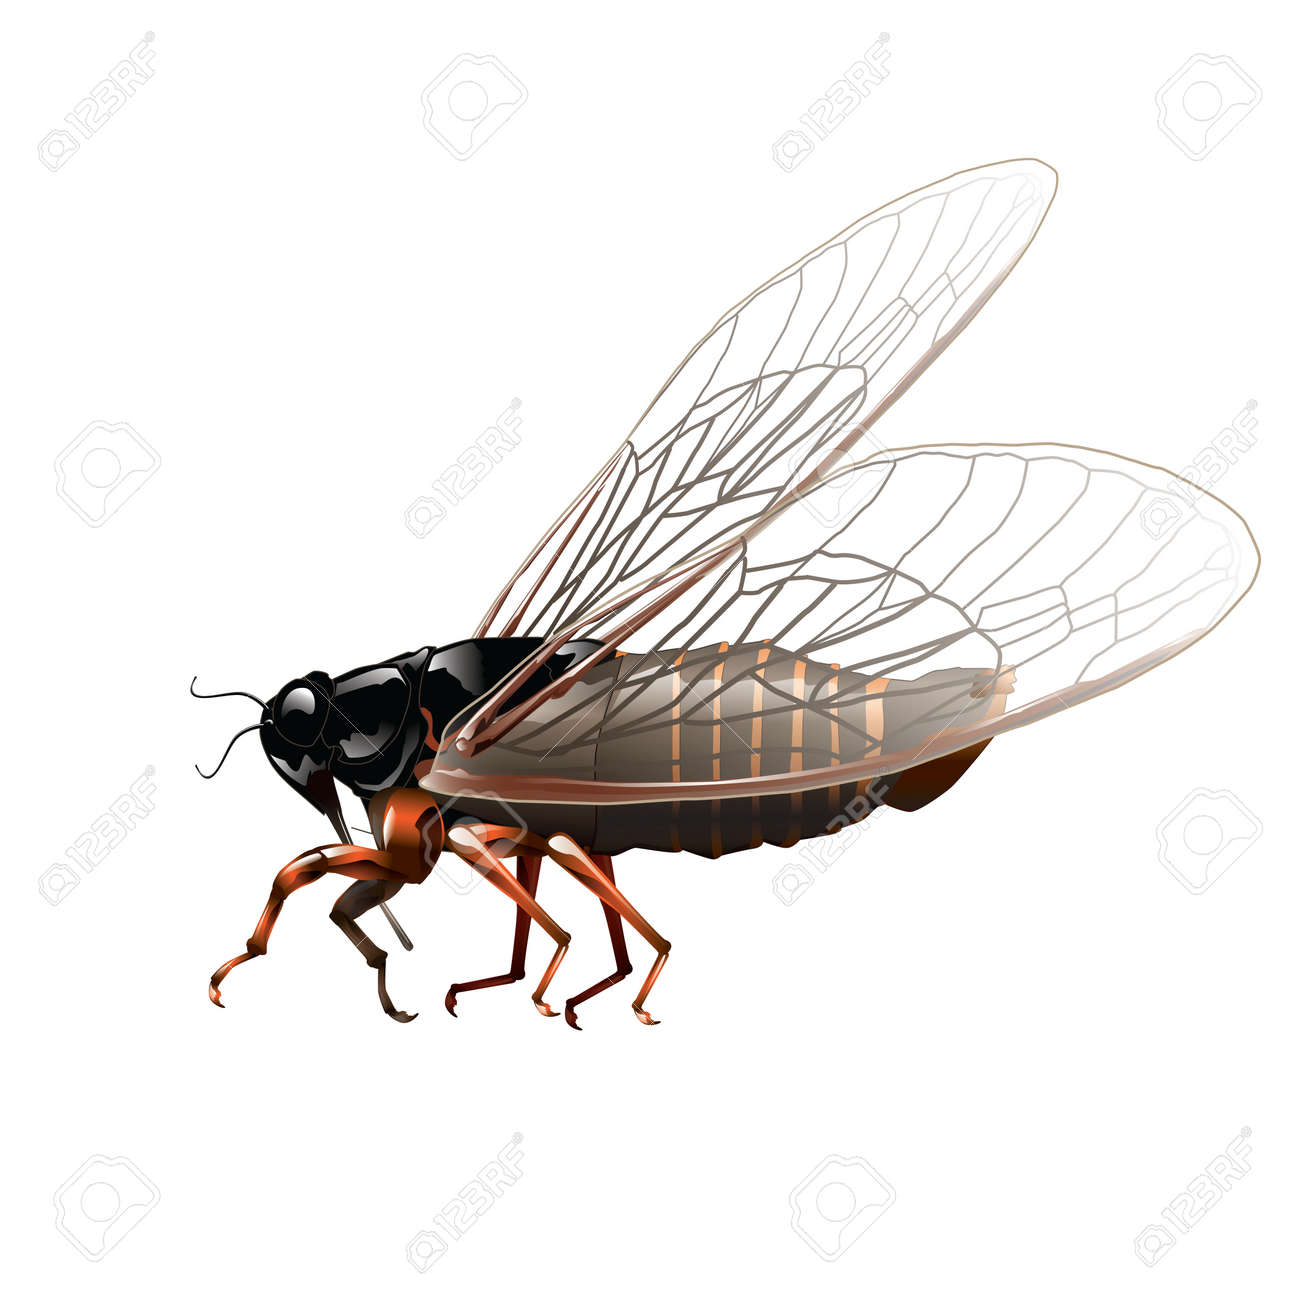 Cricket insect isolated on white. Vector, illustration. Stock Vector - 45514586